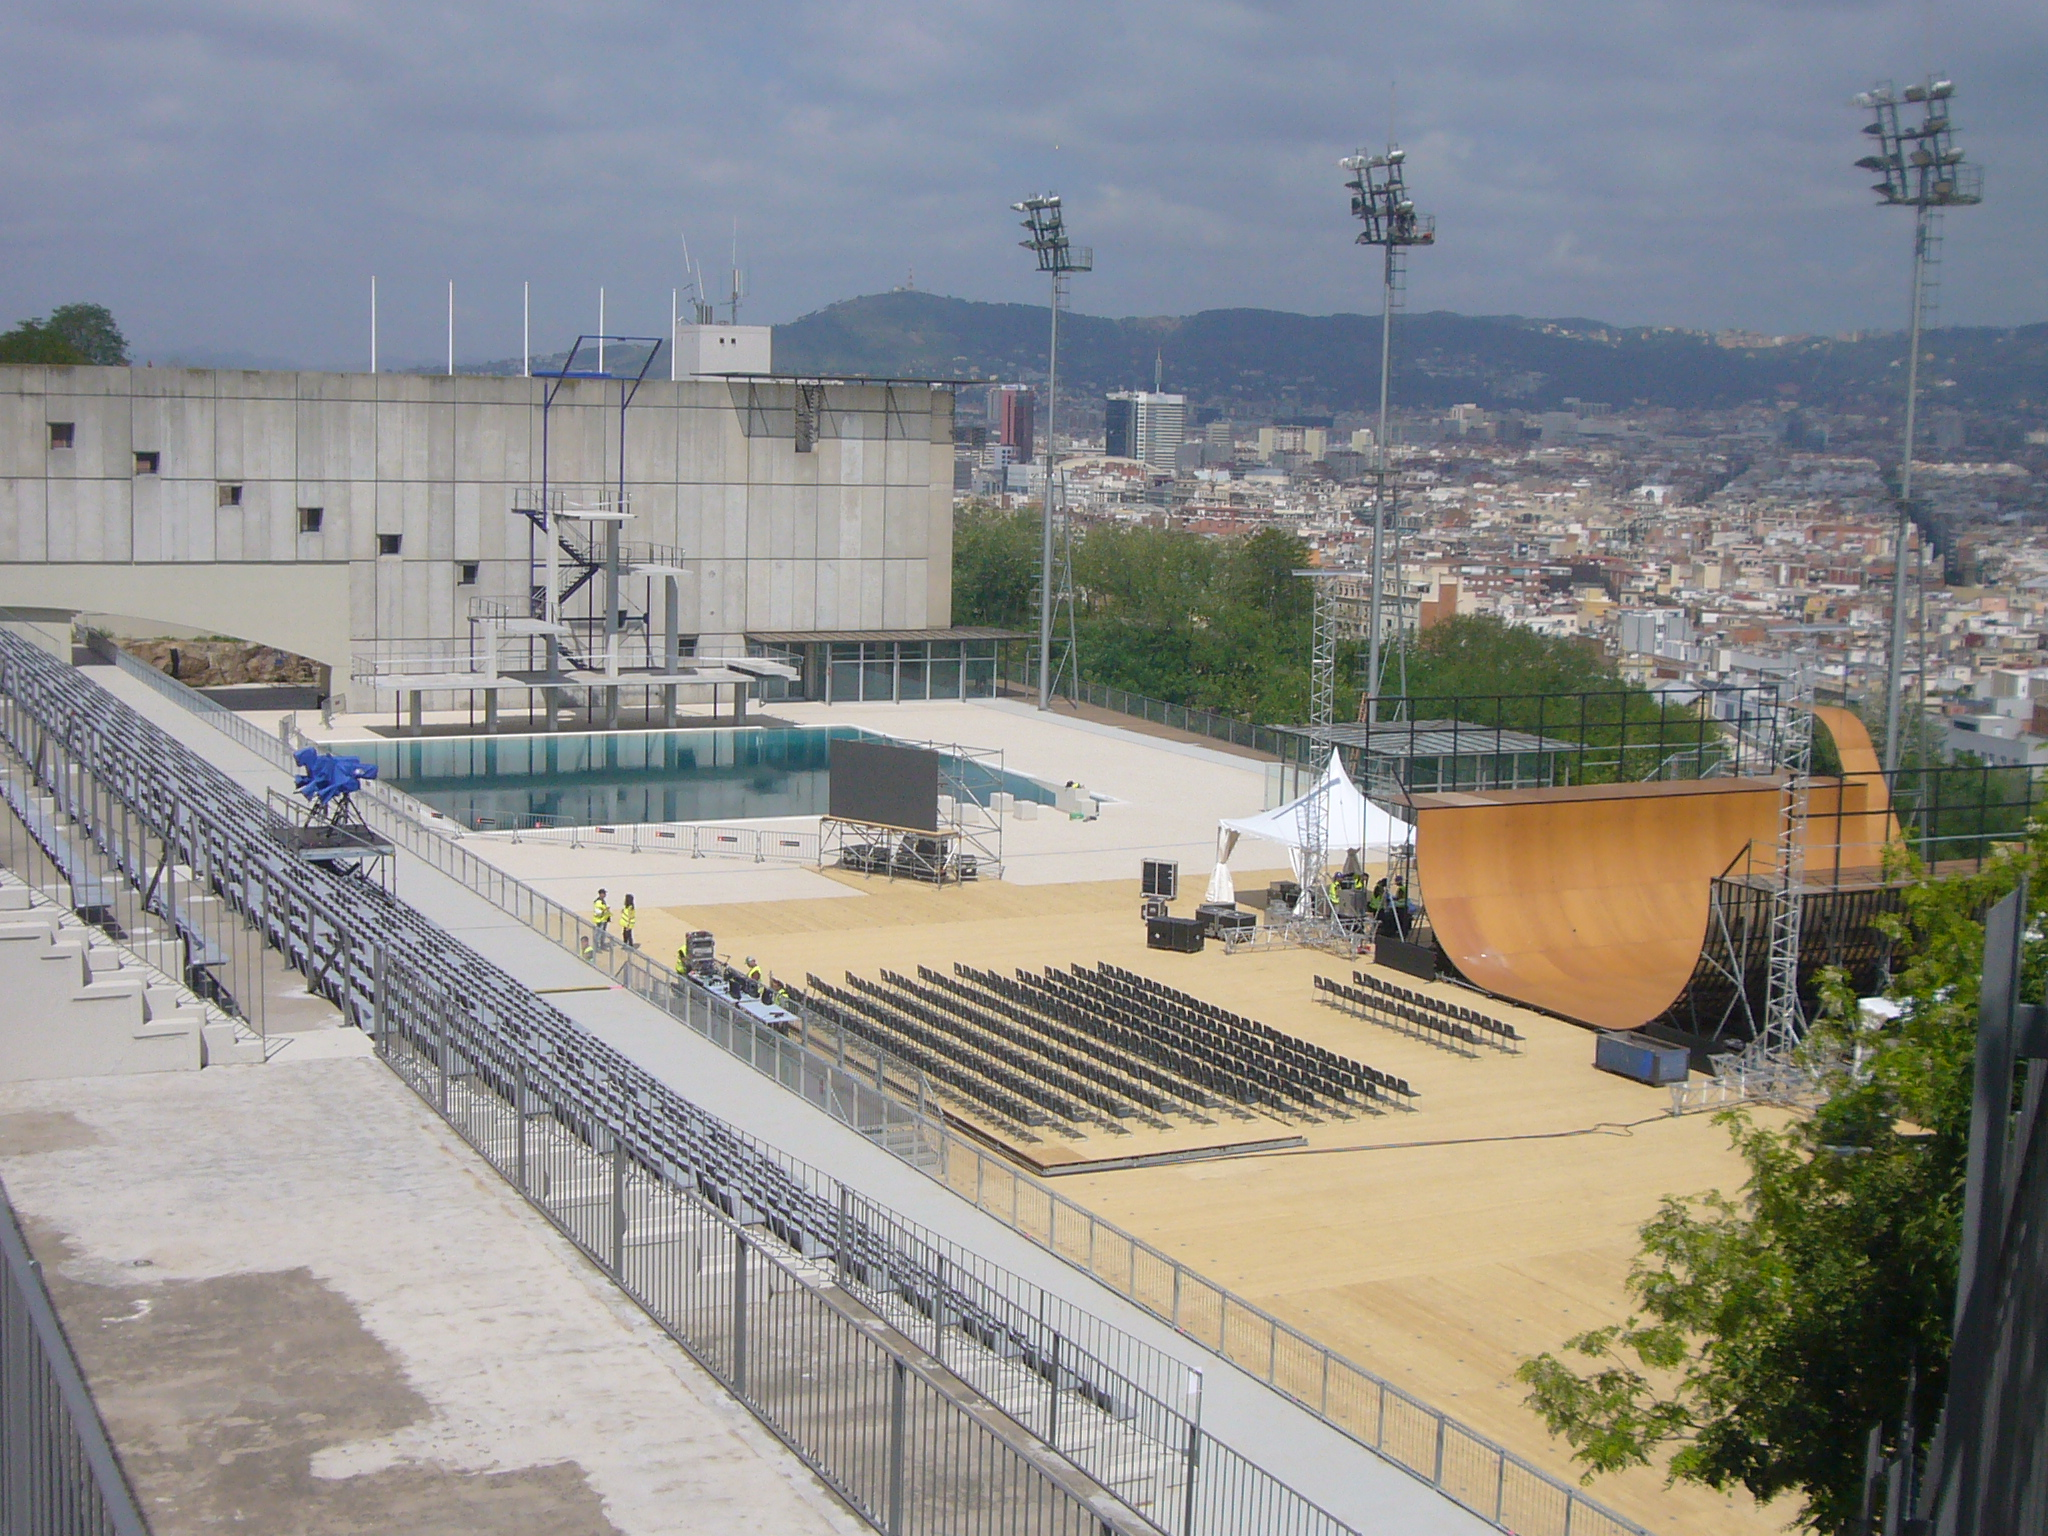 Piscina Municipal Montjuic File Piscina Municipal De Montjuïc Ready For The X Games